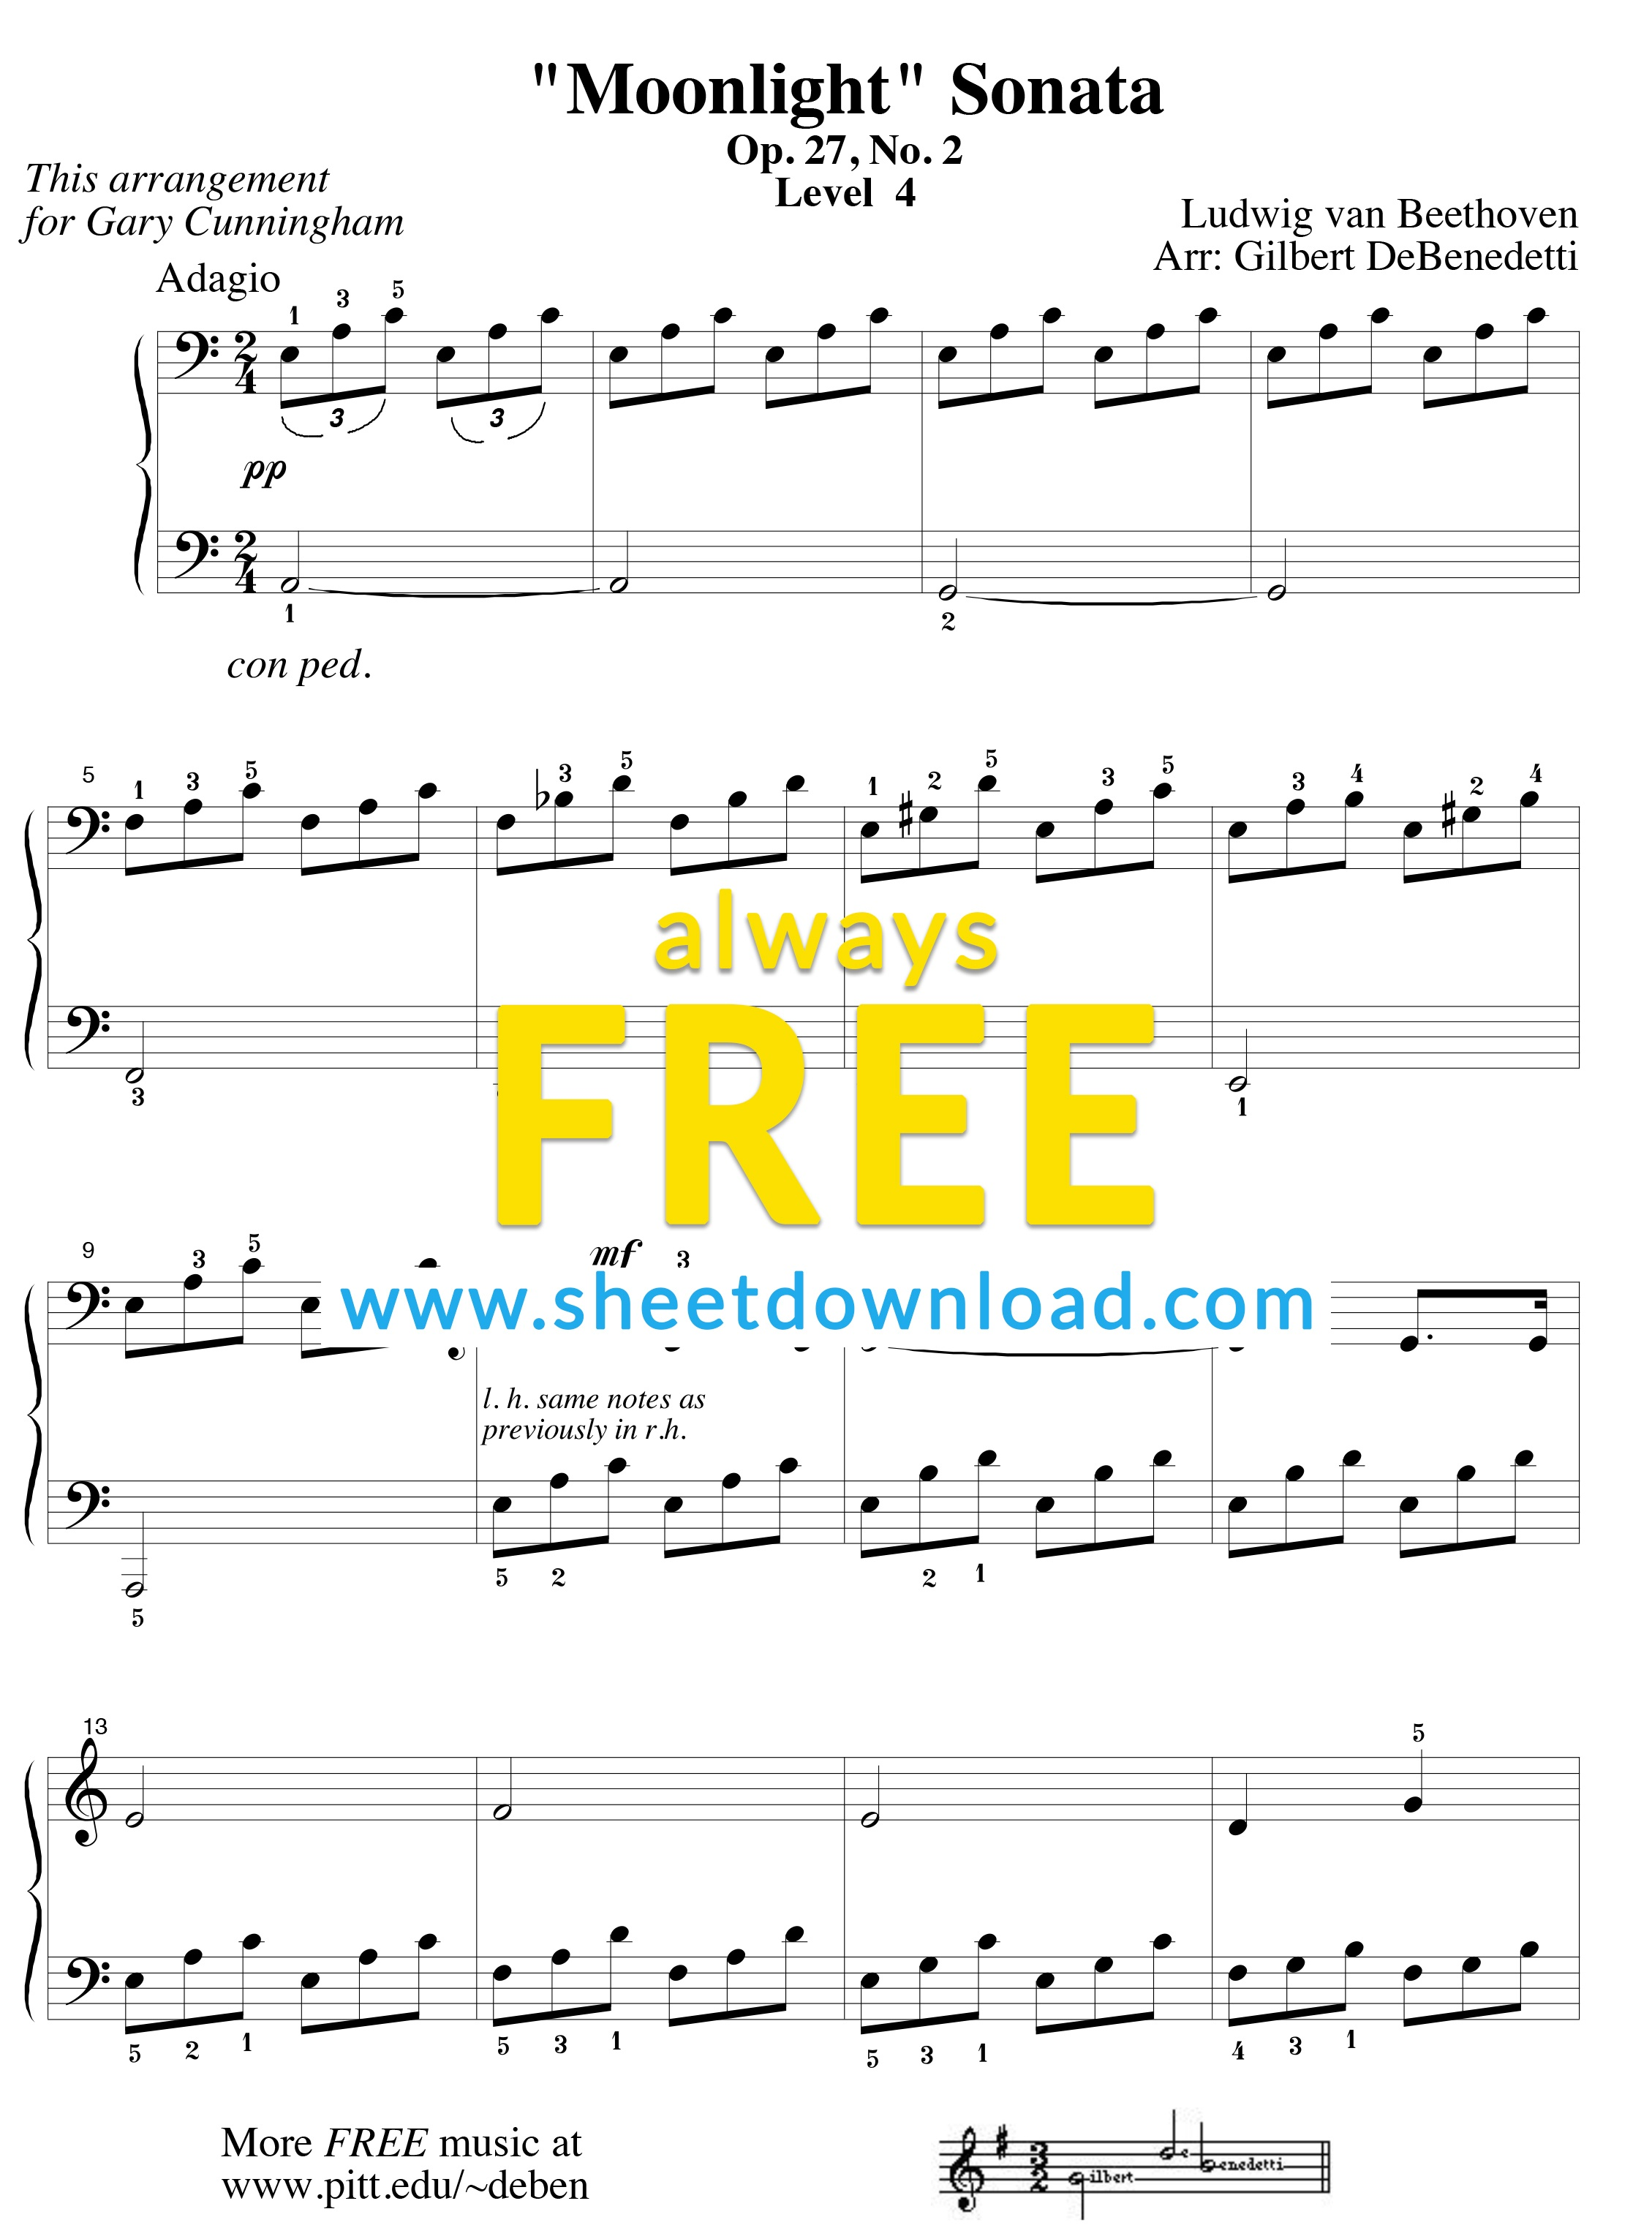 Top 100 Popular Piano Sheets Downloaded From Sheetdownload - Free Piano Sheet Music Online Printable Popular Songs